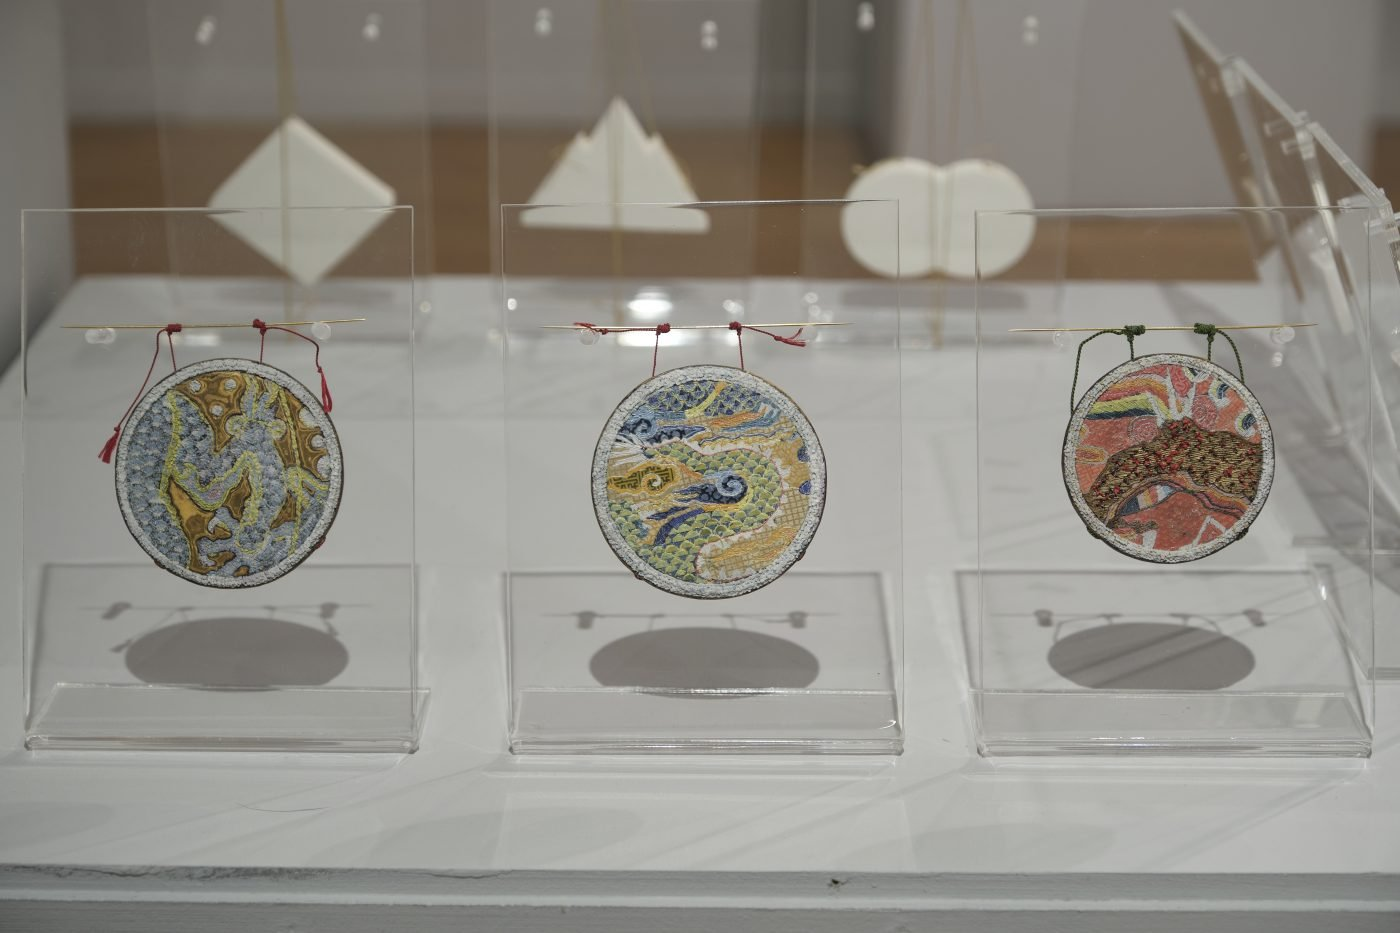 Three round brooches featuring dragon motifs, mounted on plastic display stands on a plinth